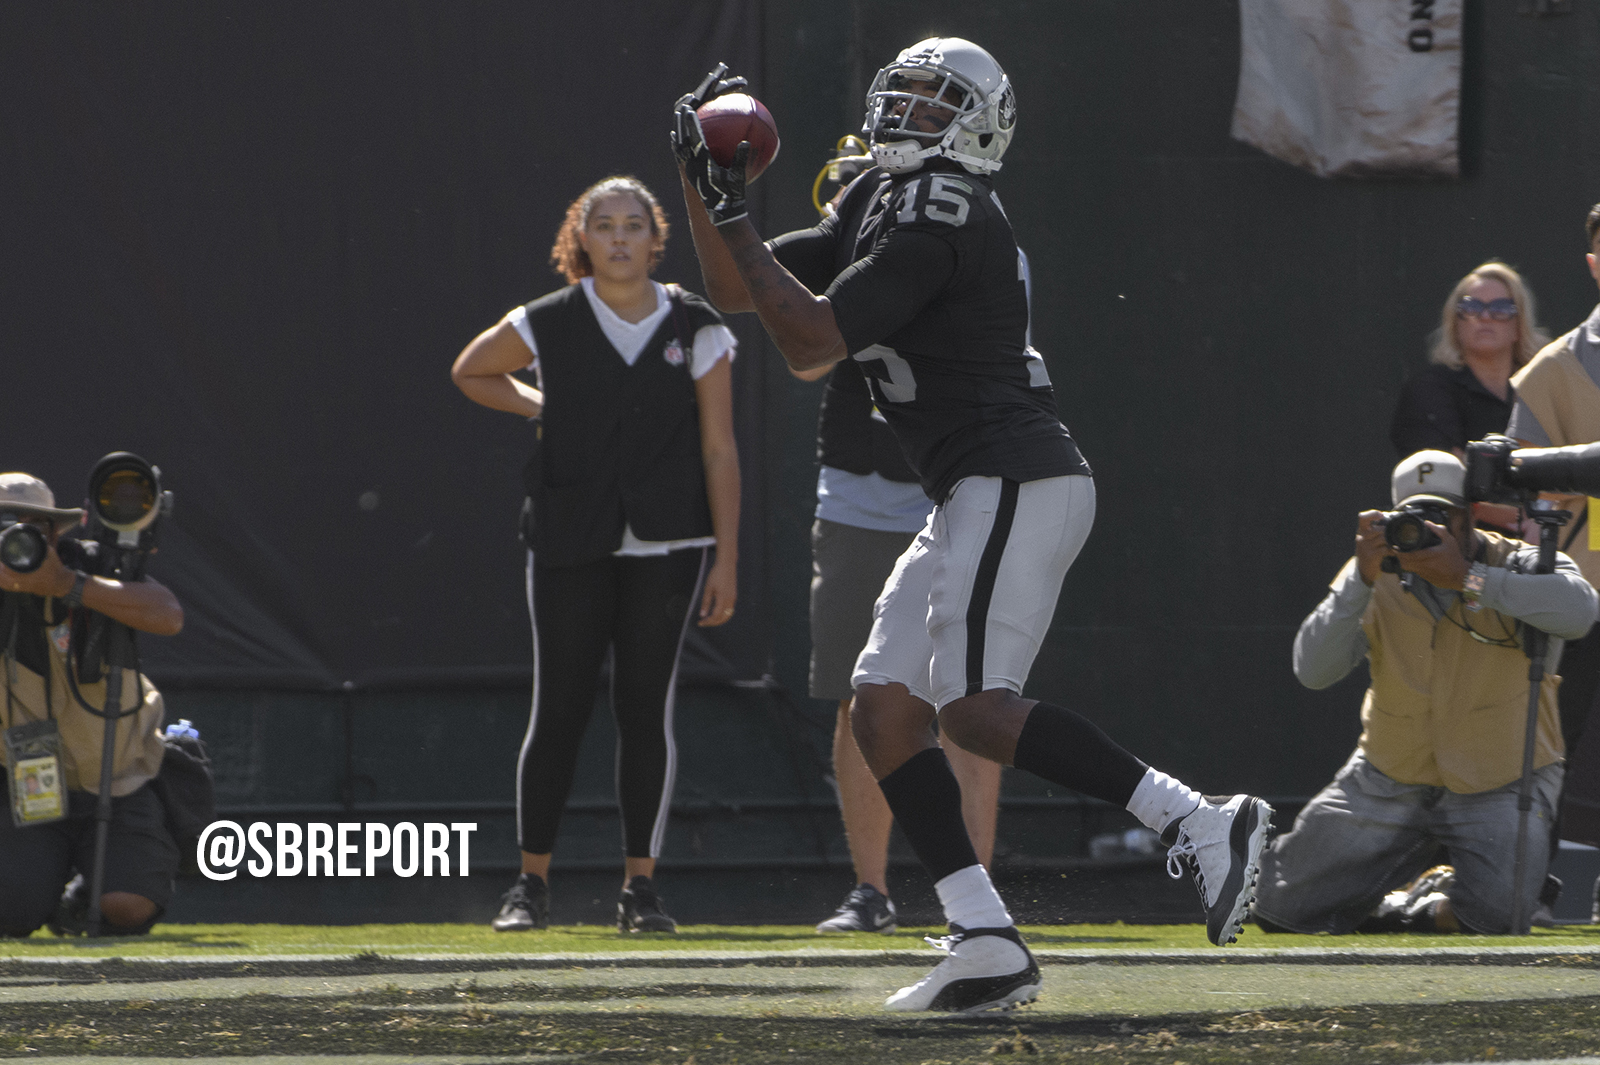 Countdown to Paydirt: Raiders look to get back on track